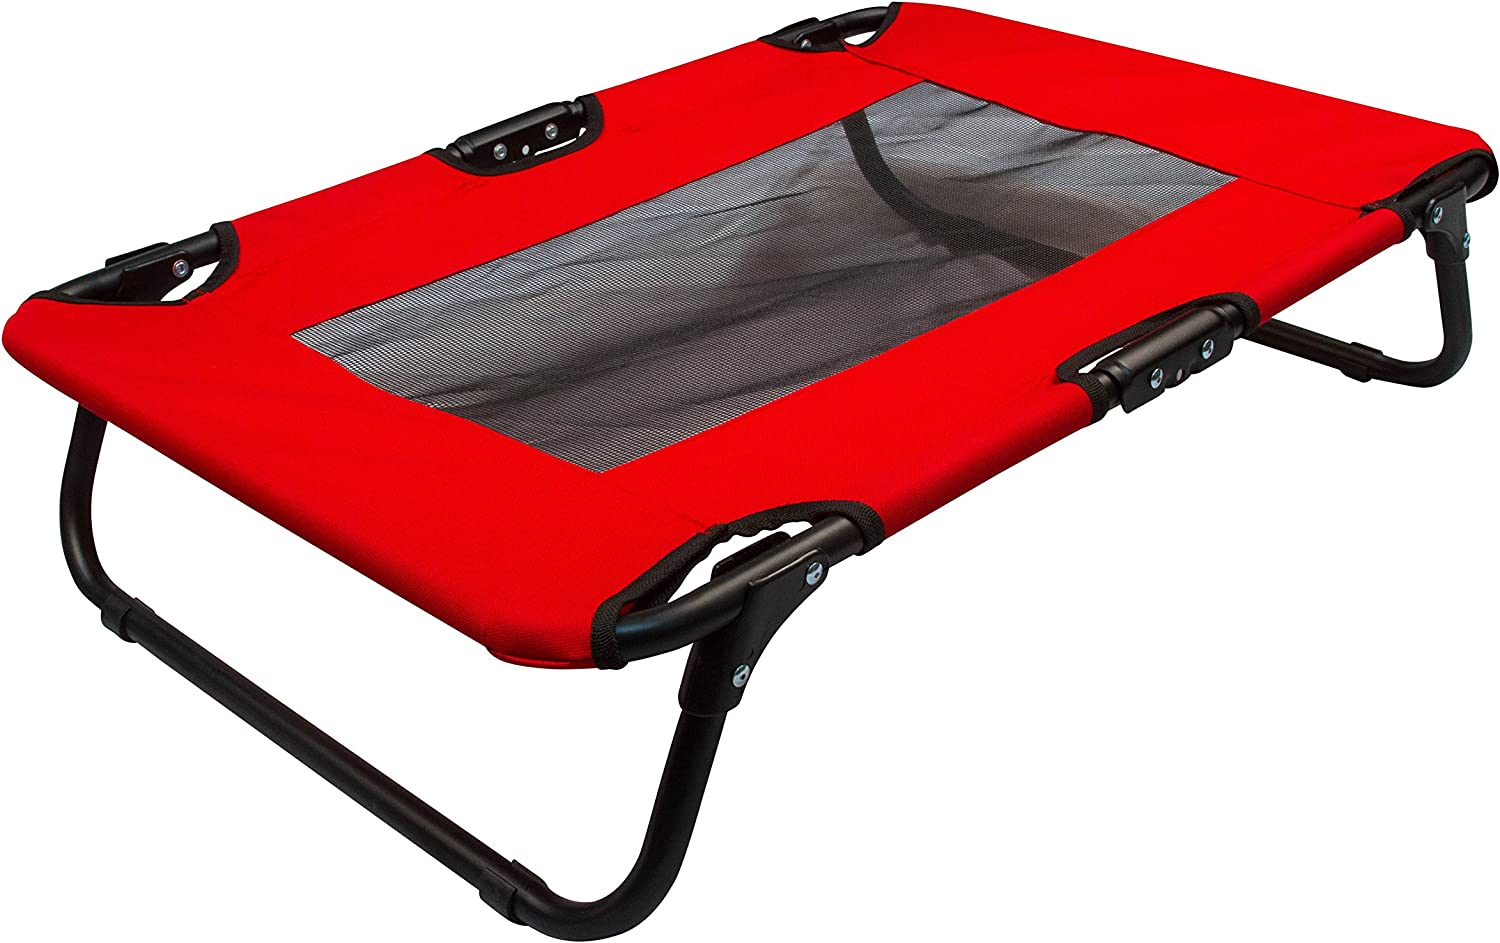 Coleman Folding Cot For Pet Up to 50 Lbs – Red